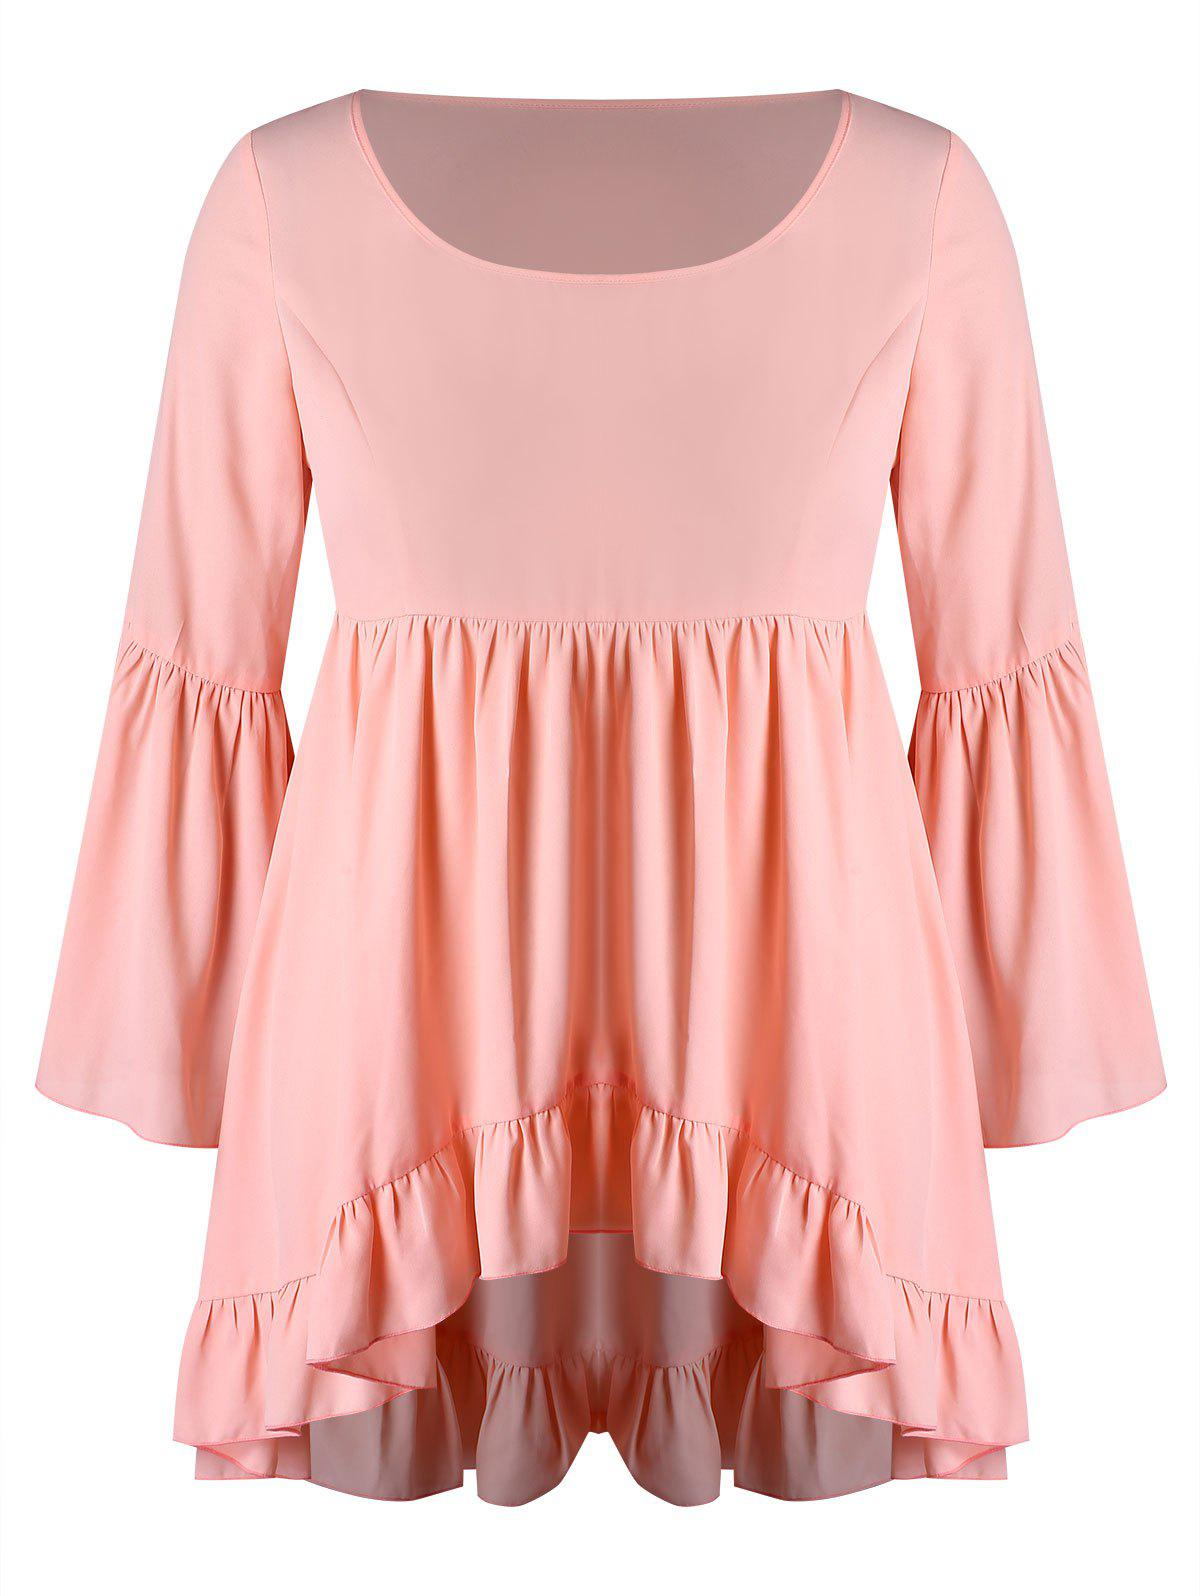 Plus Size Flare Sleeves Asymmetric Flounce Blouse - ORANGE PINK 2X